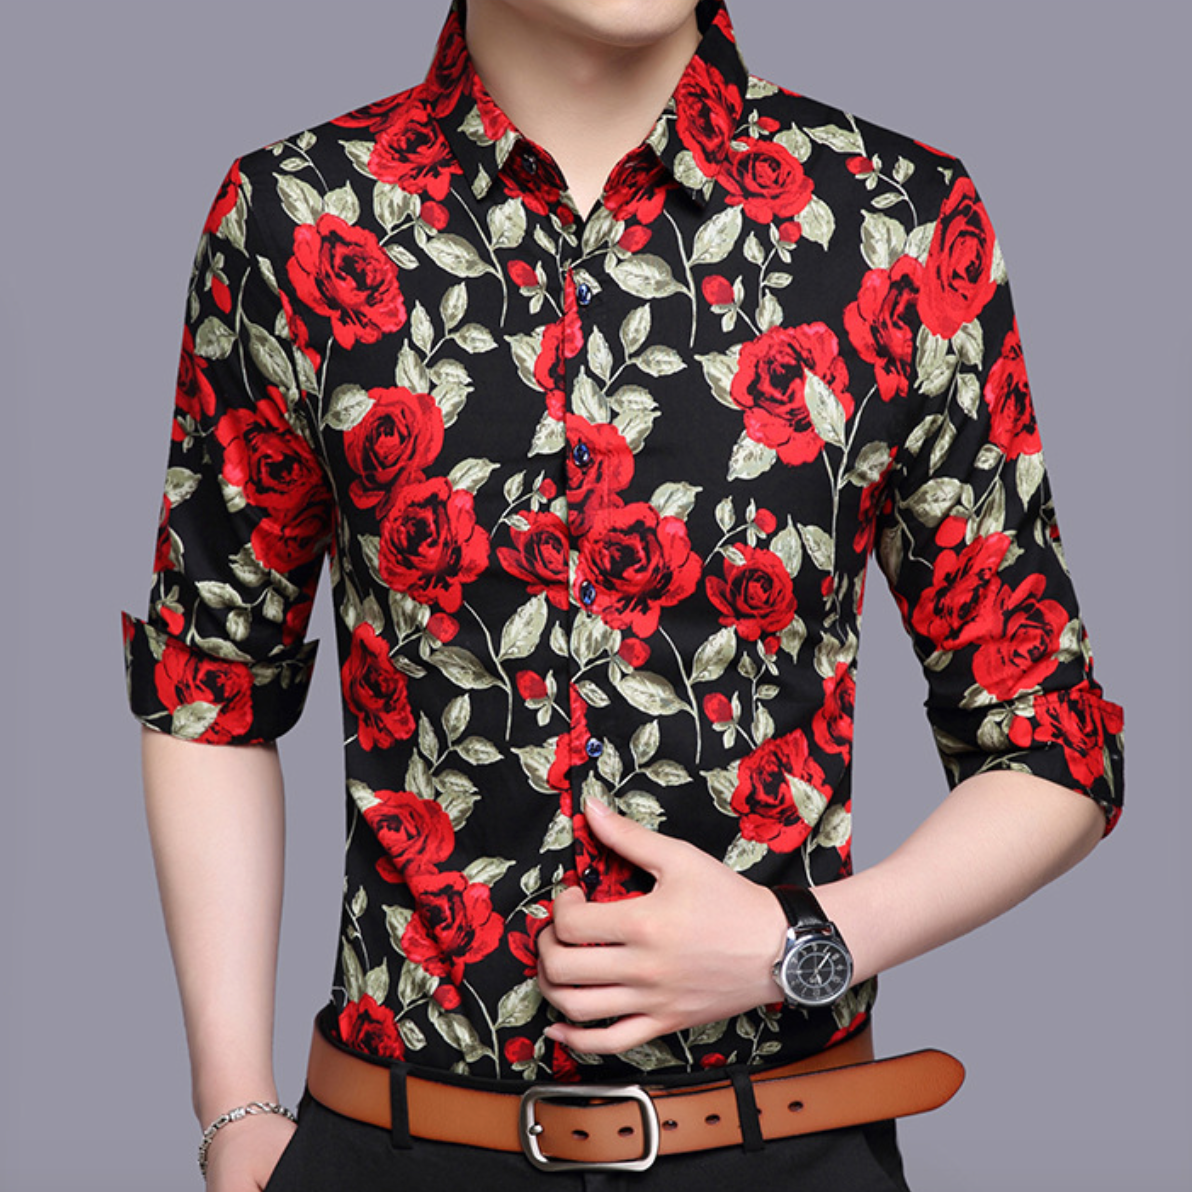 Rose Floral Casual Dress Shirt